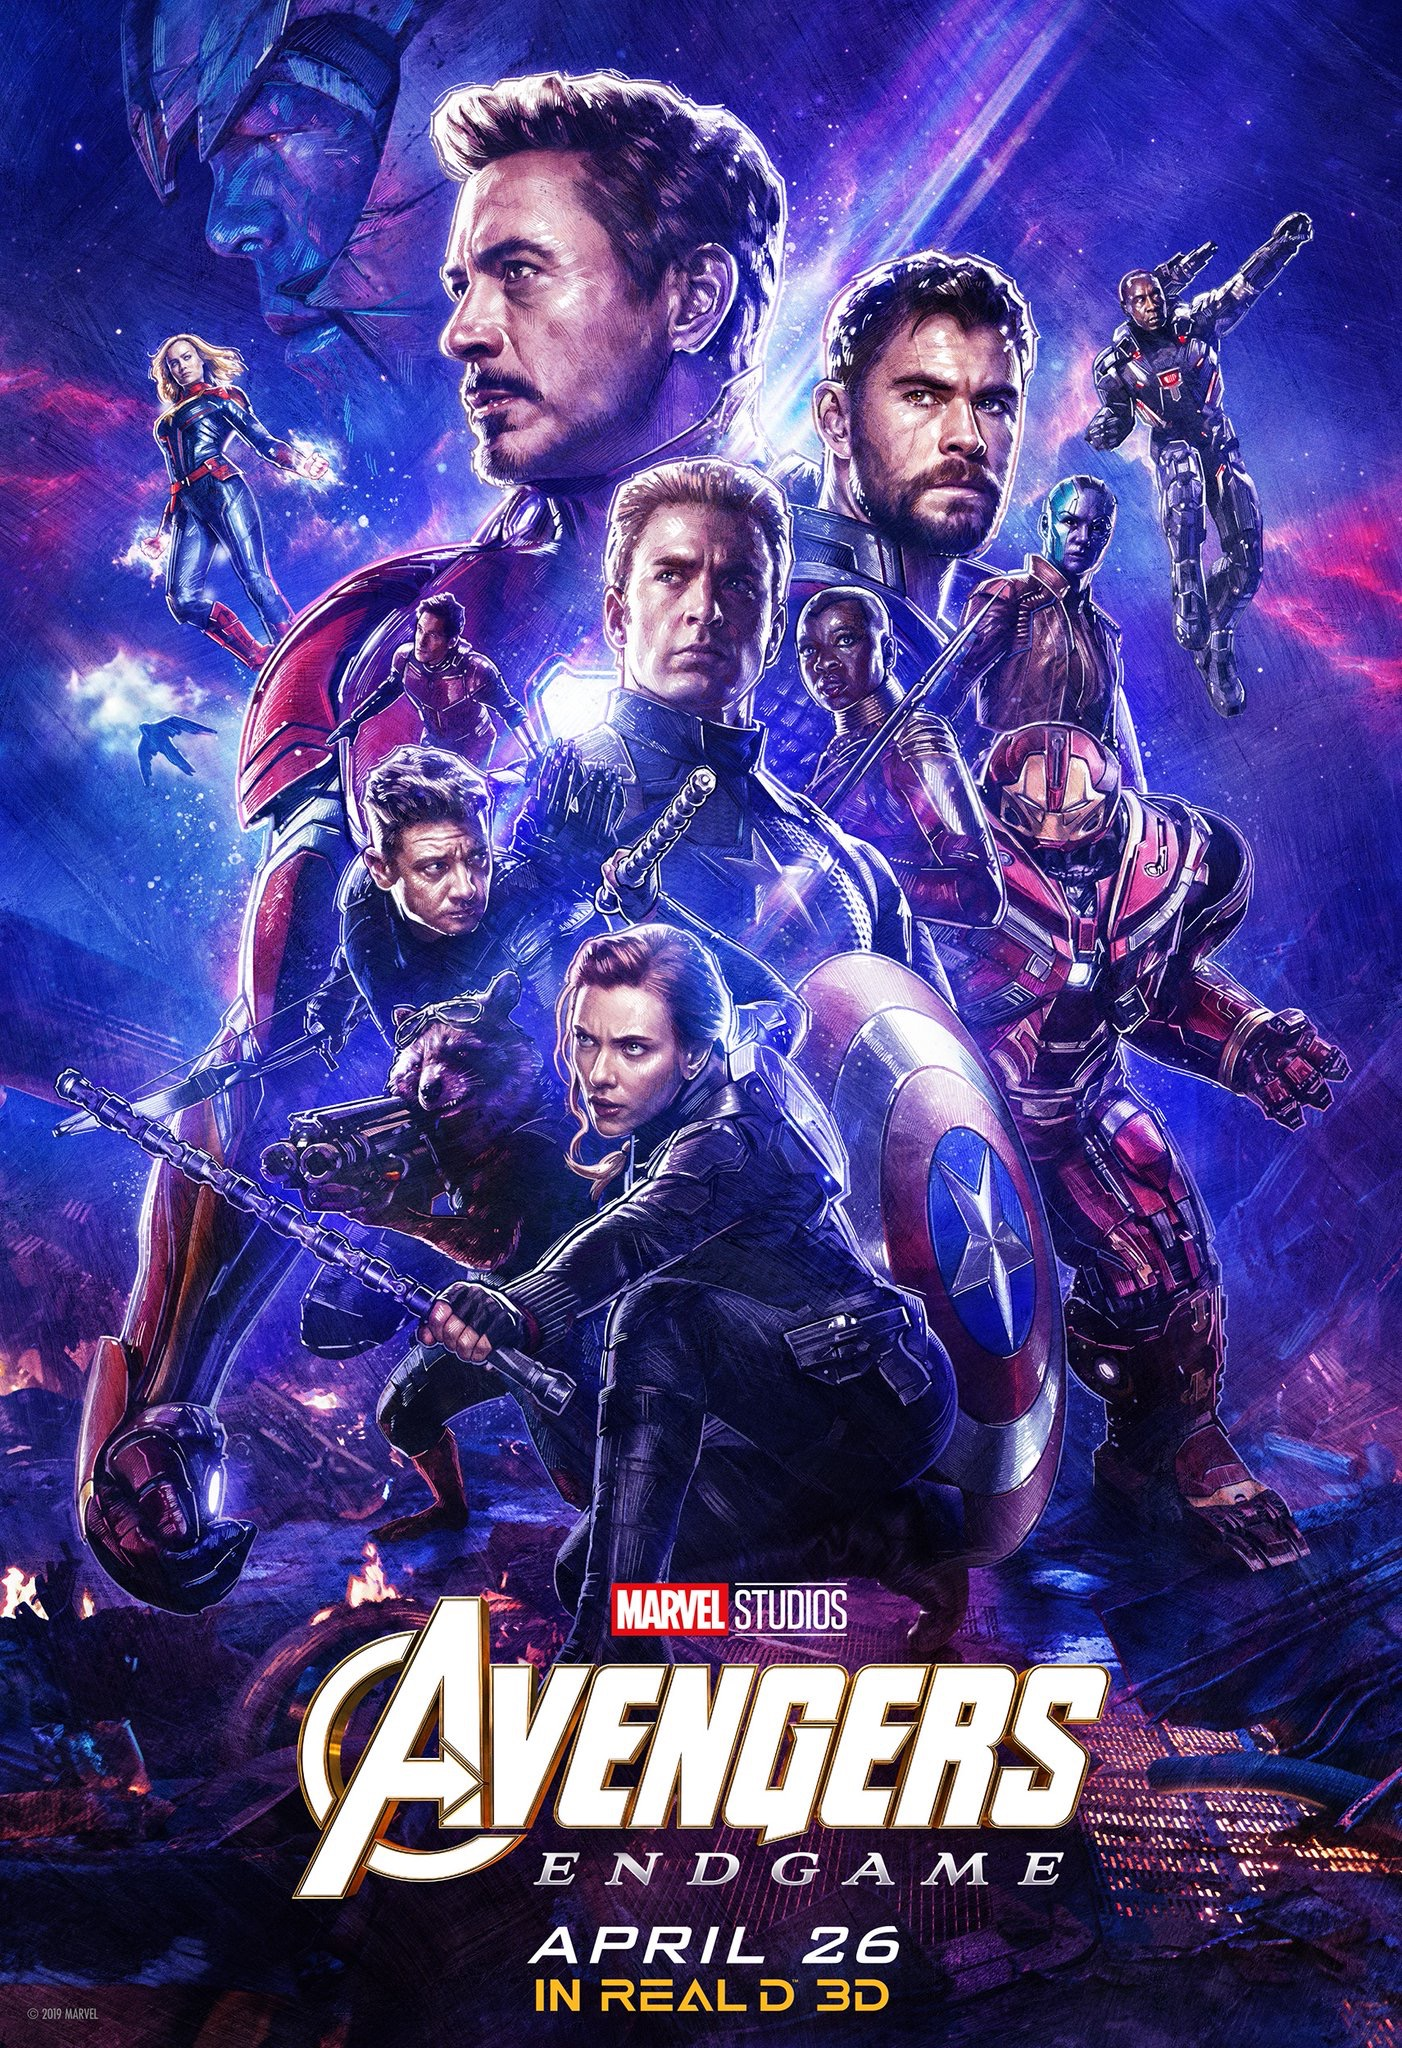 avengers-endgame-3d-3-d-movie-poster.jpeg